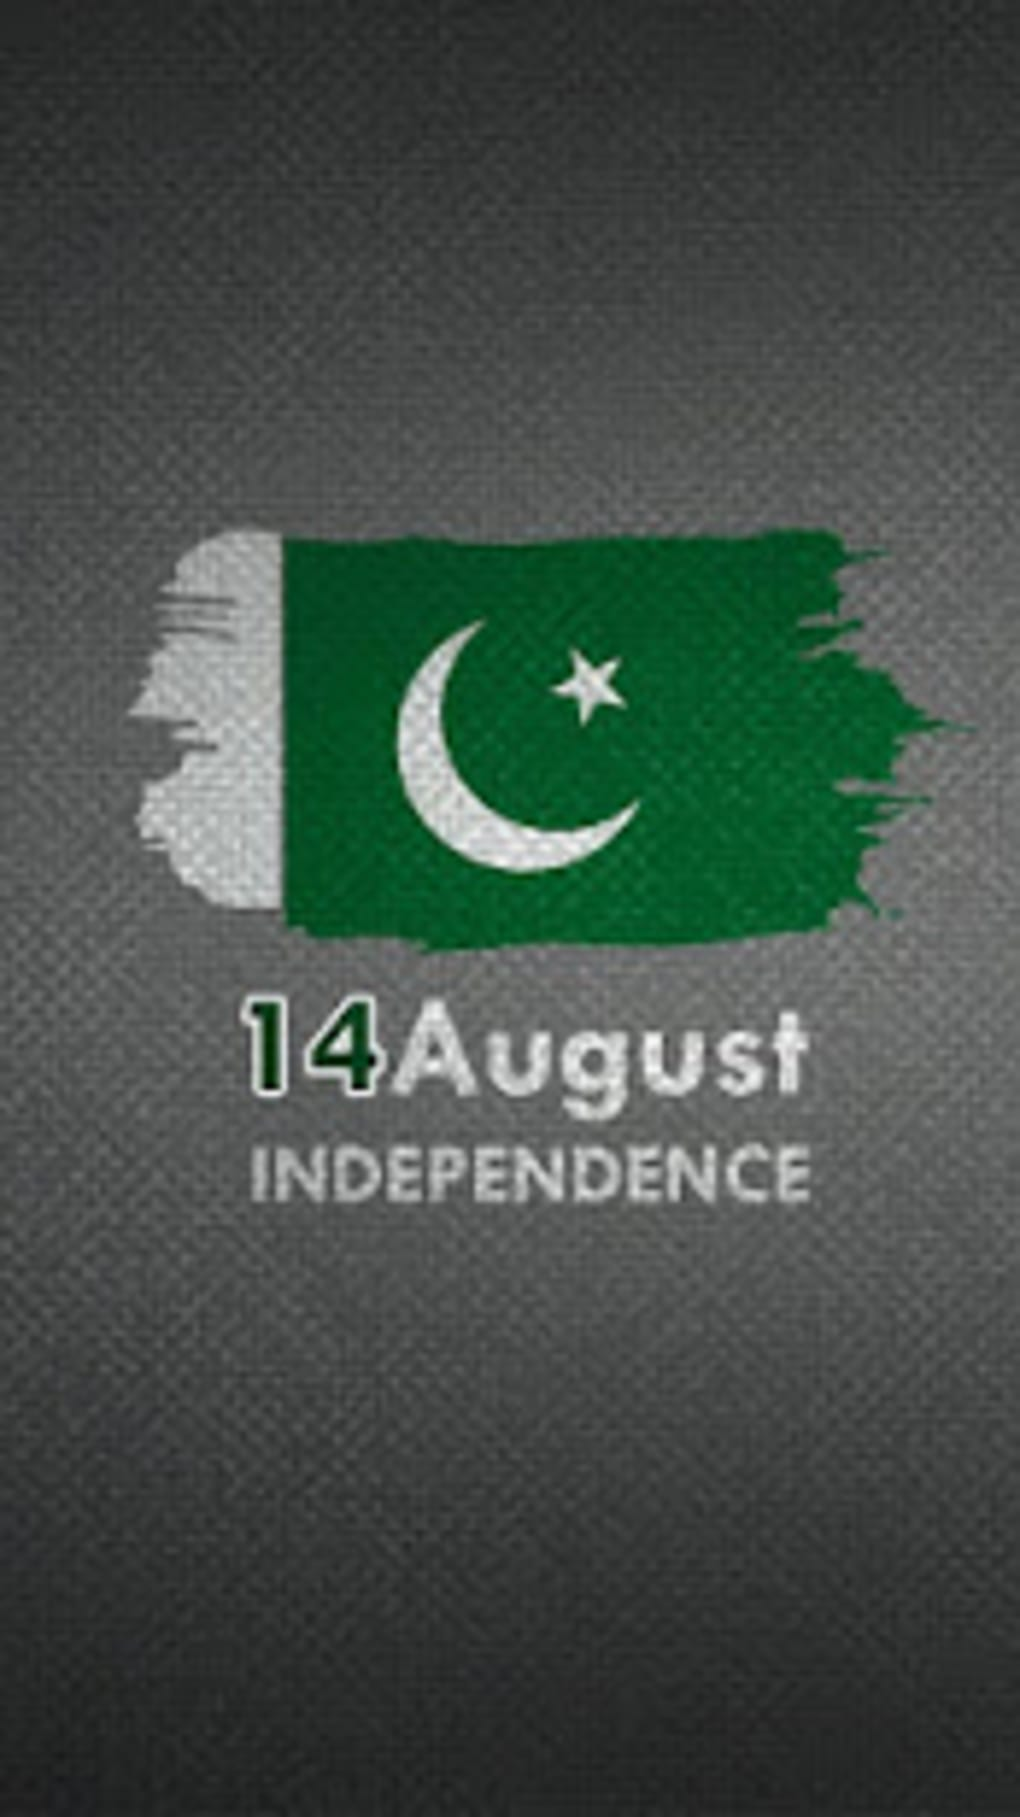 14 August Pakistan Independence Day 2019 Wallpaper for